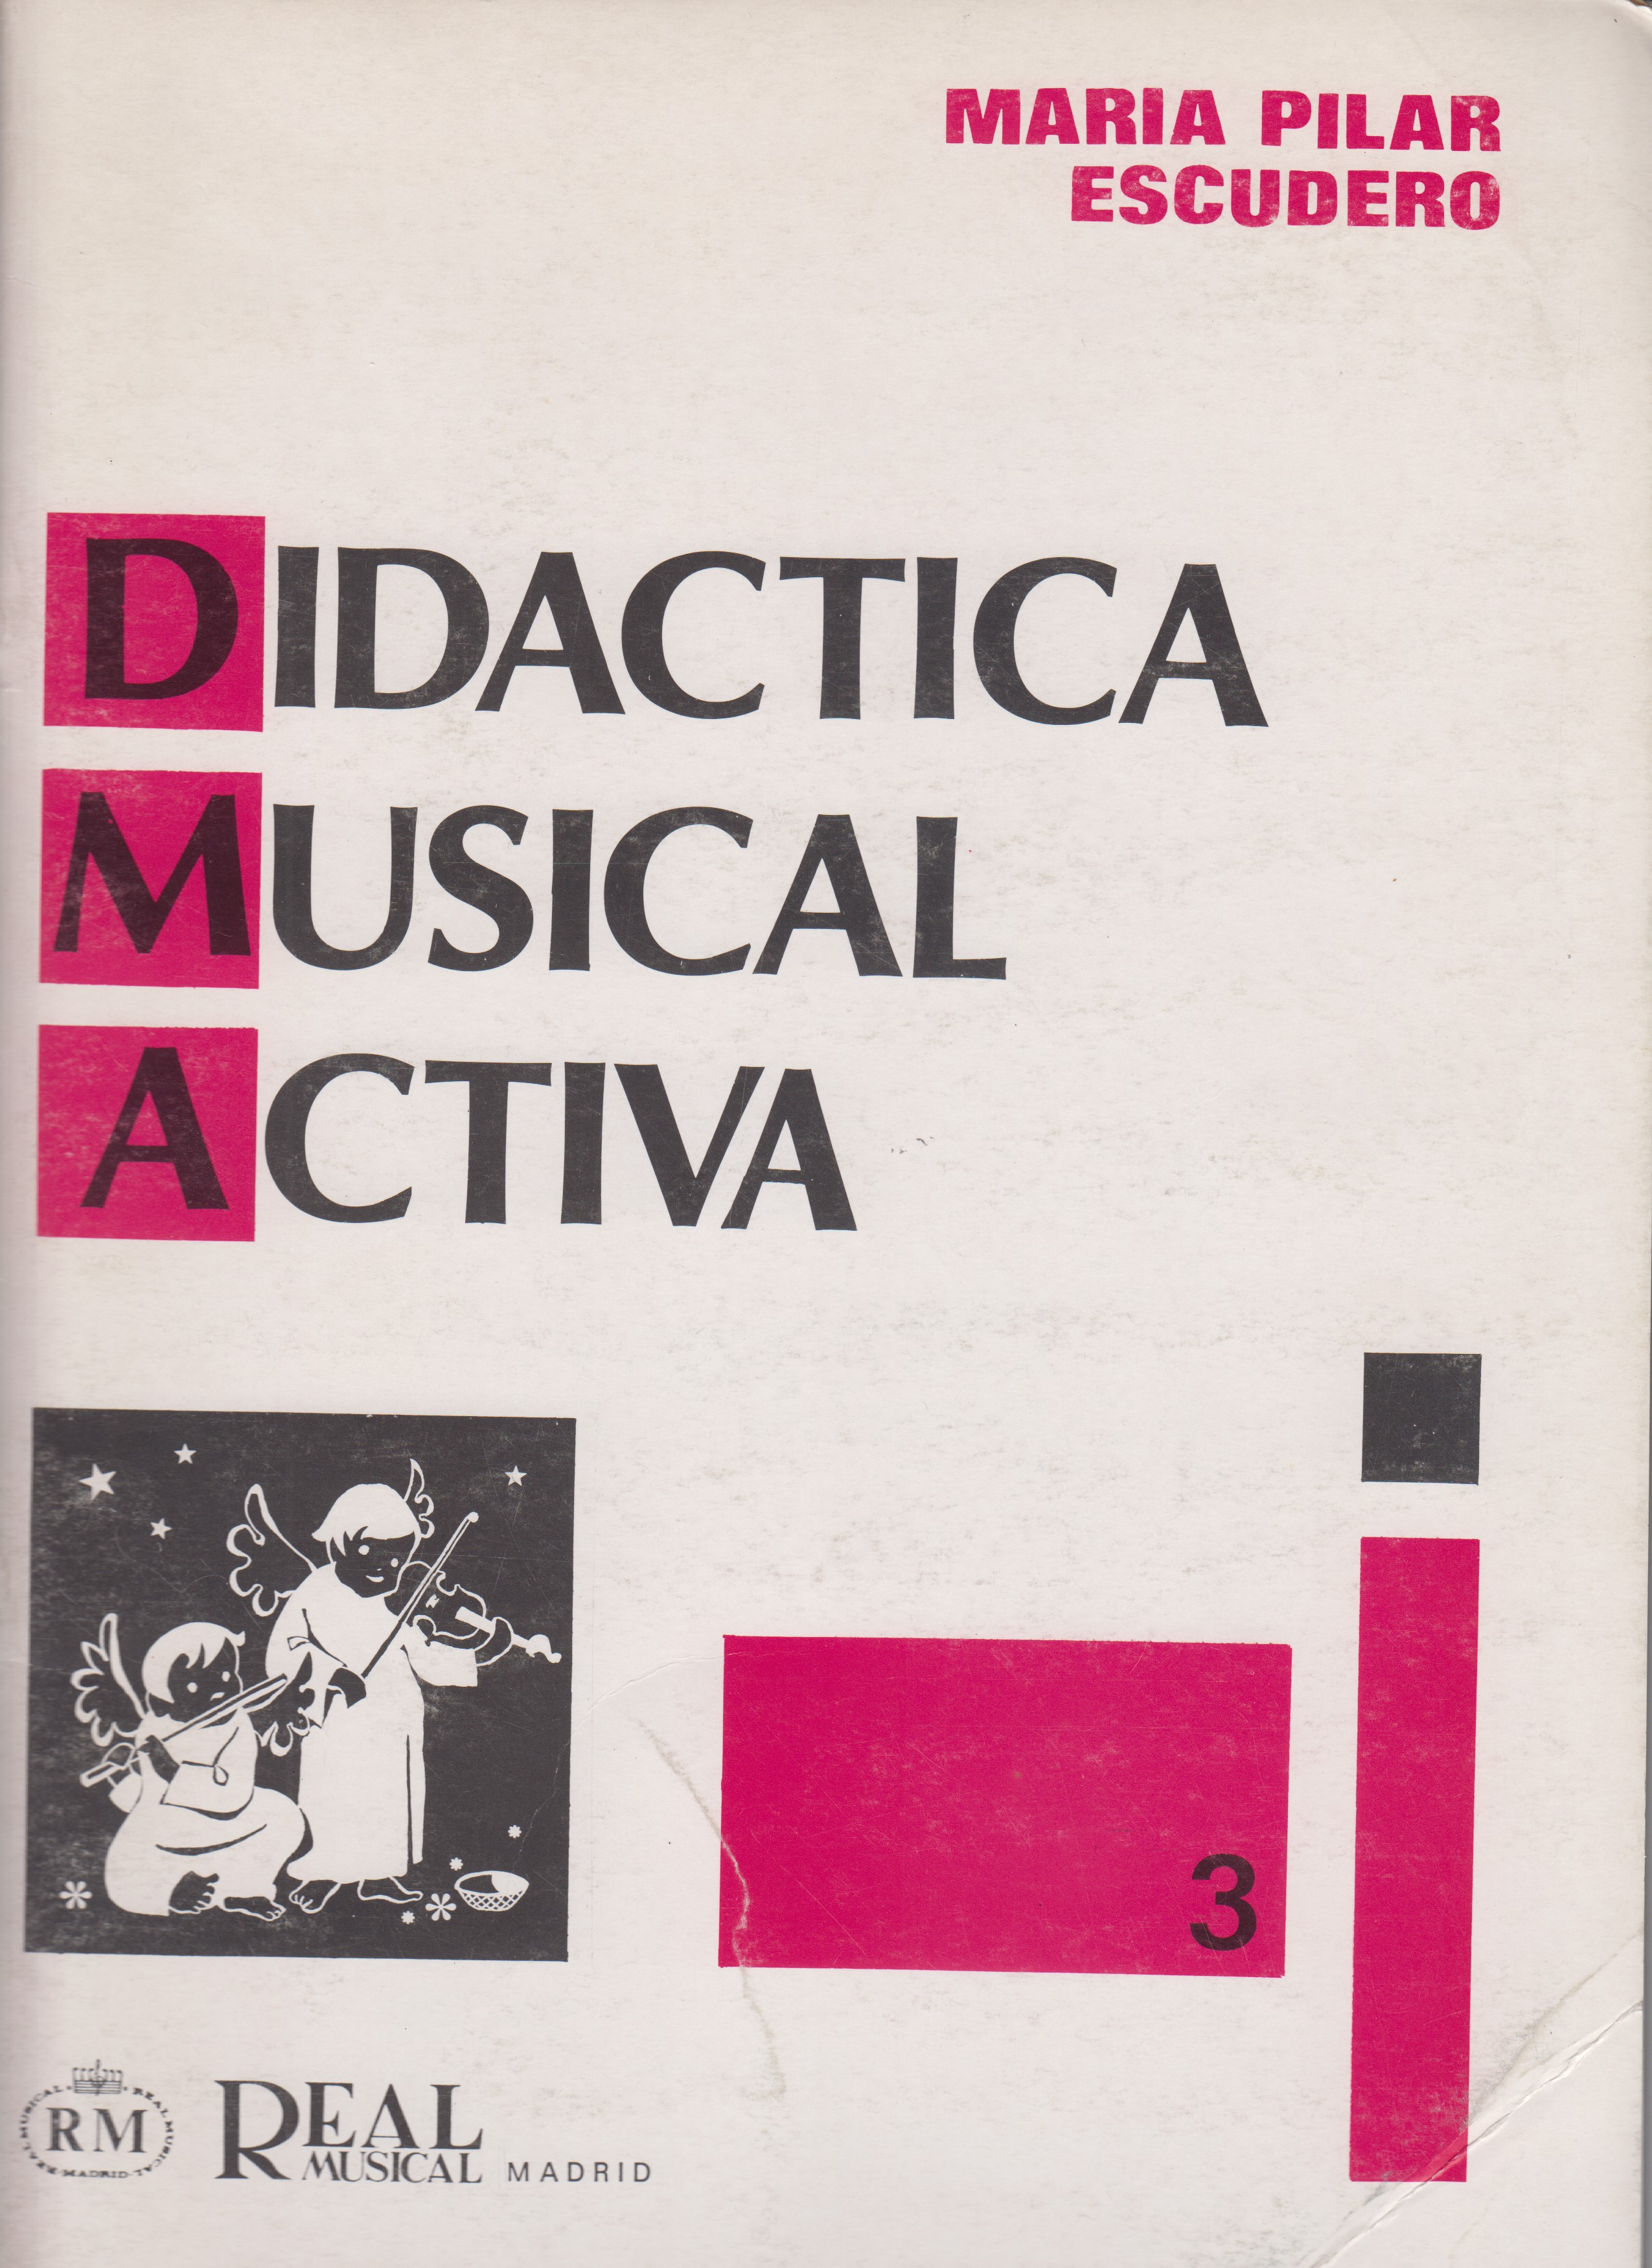 Didactica Musical Activa Nº3